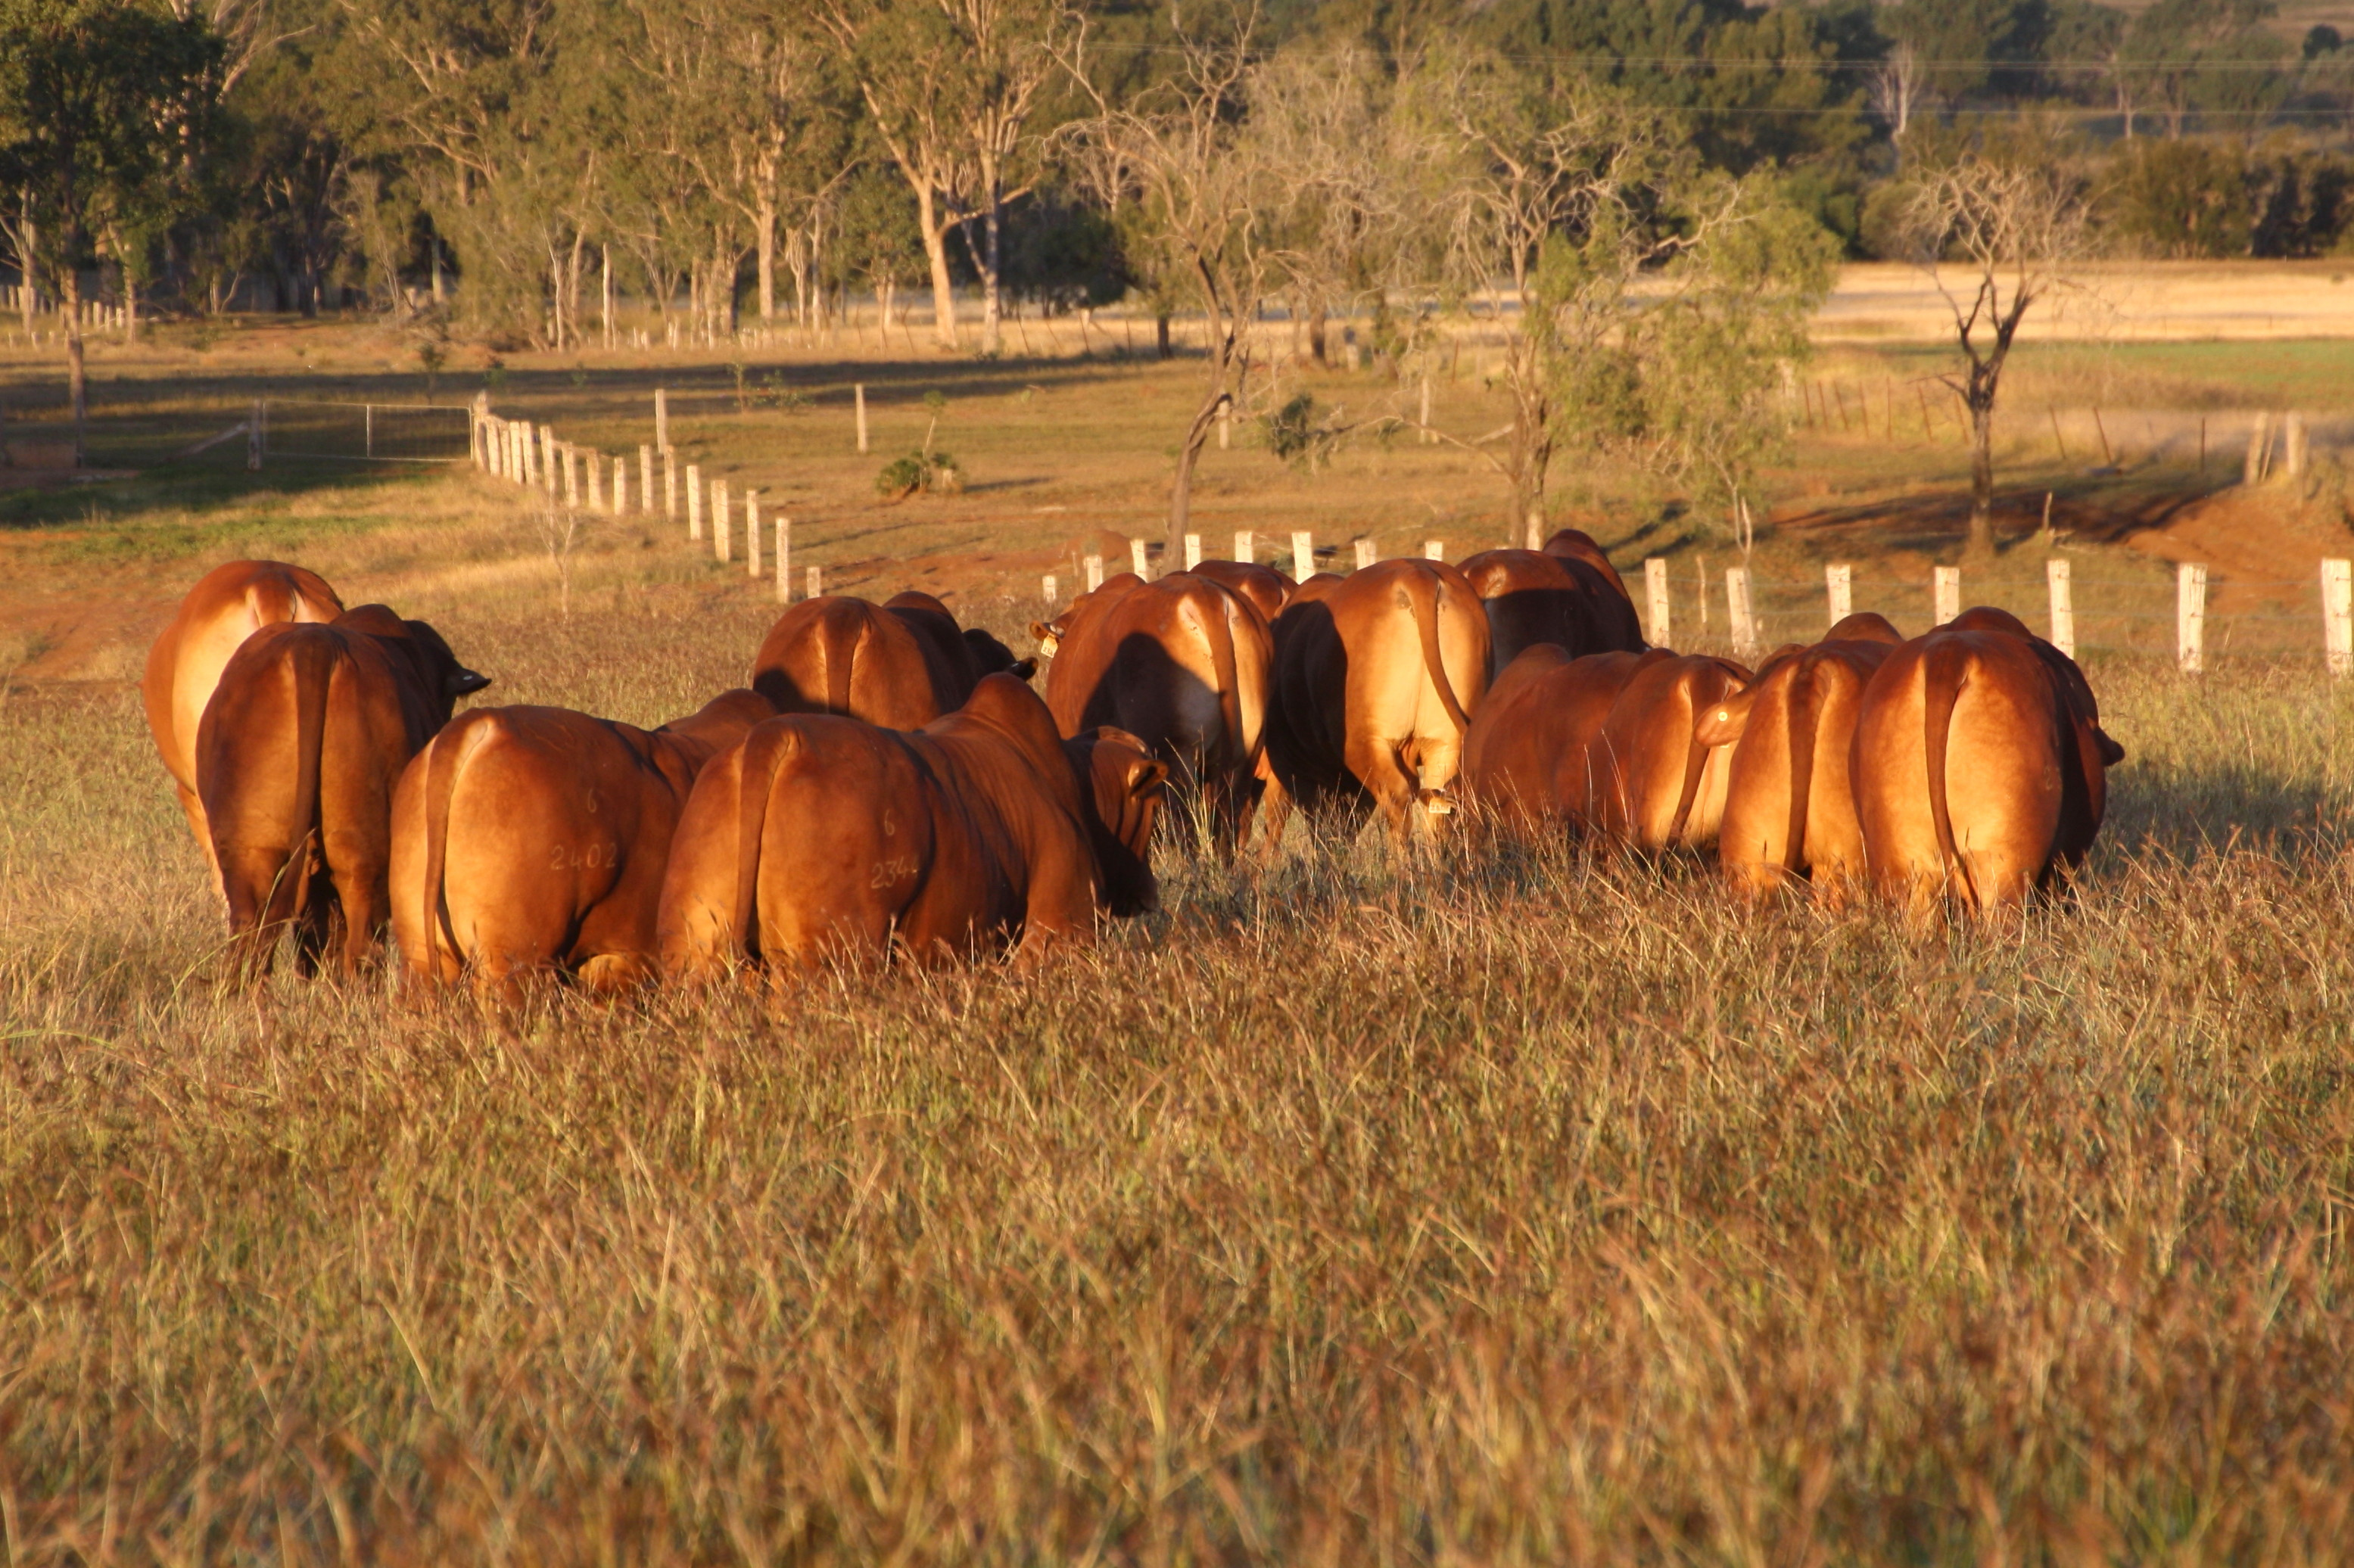 Bulls for sale afternoon sun 2017